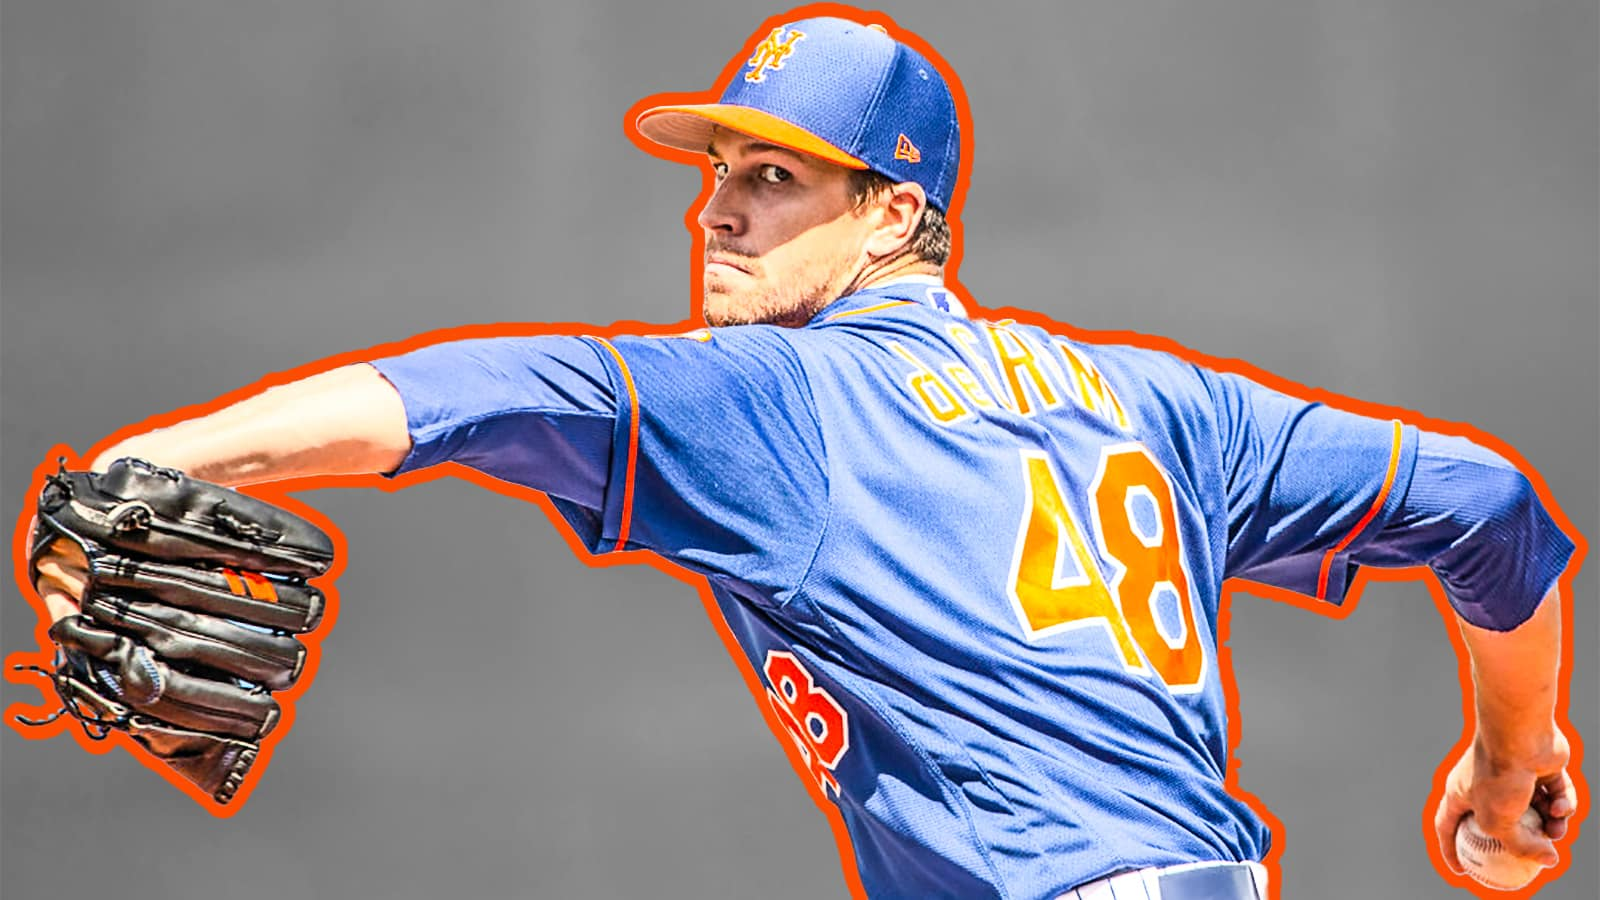 New York Mets video: Jacob deGrom features 97 m.p.h. fastball in debut